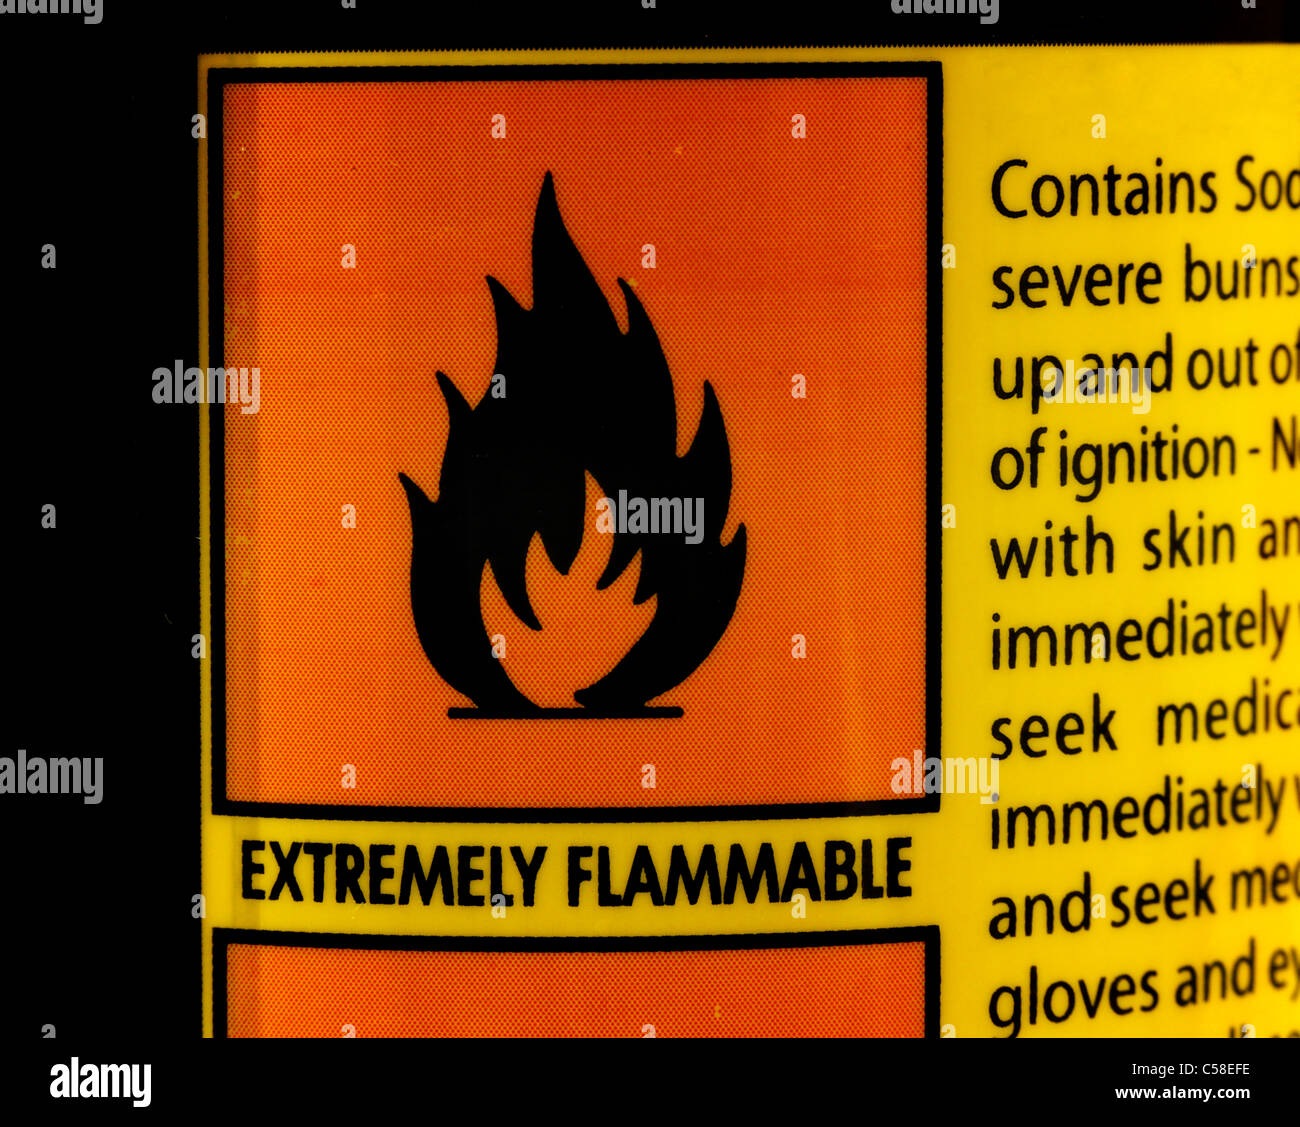 Warning Label Flammable Logo - Stock Image